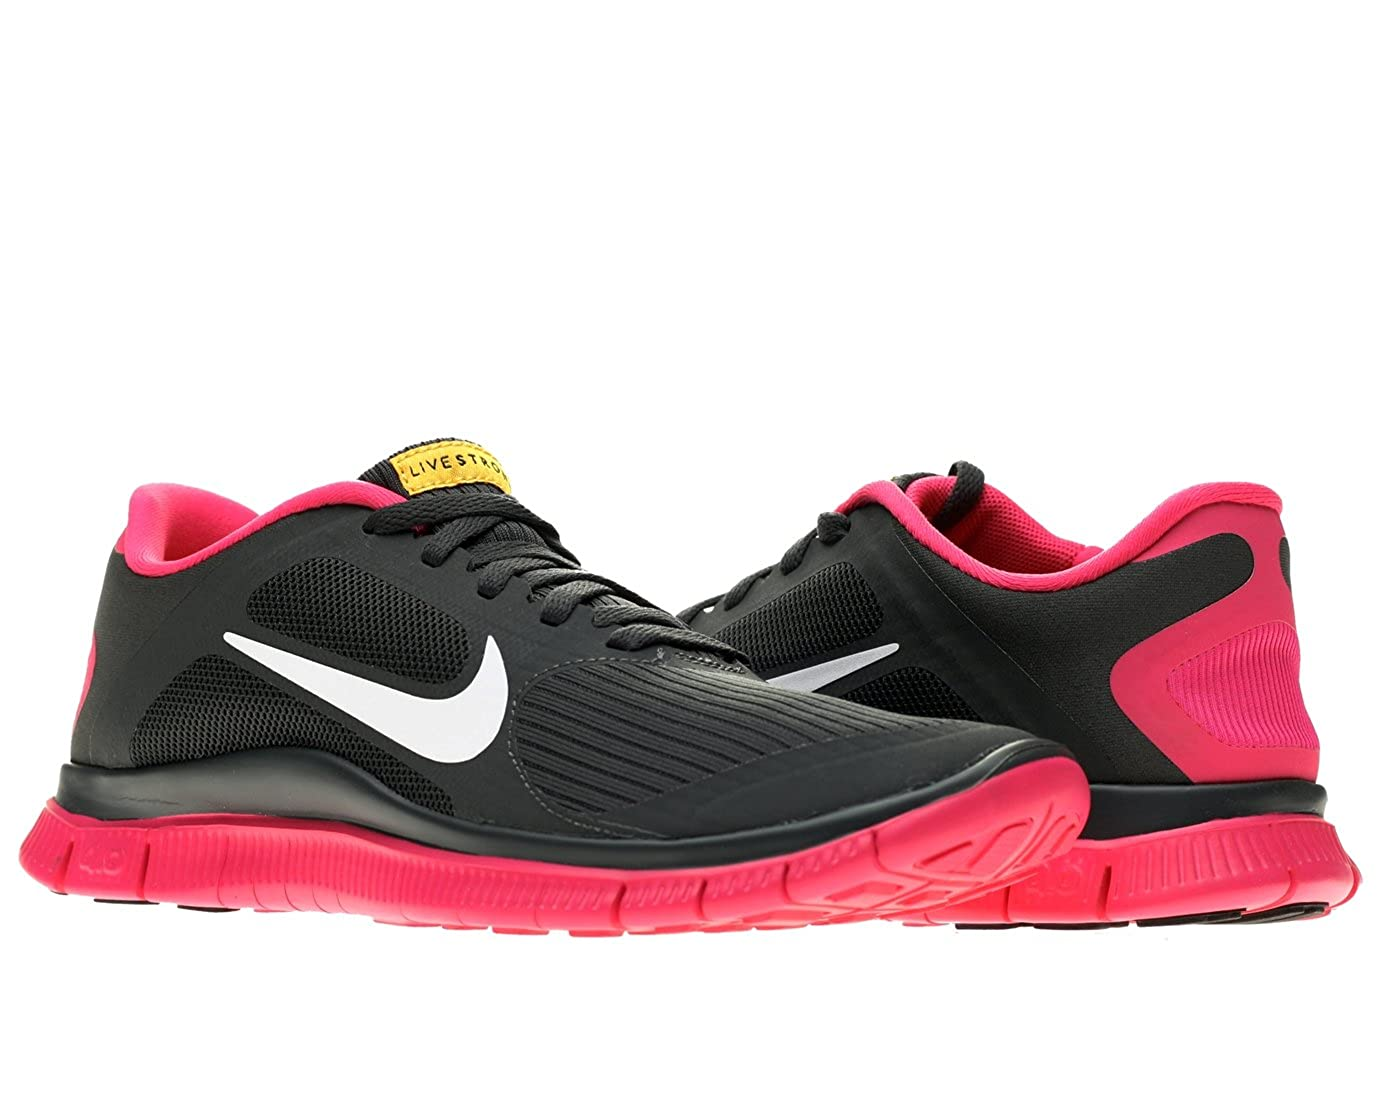 new style 61e16 75a17 NIKE Free 4.0 V3 Livestrong Womens Running Shoes 586296-006